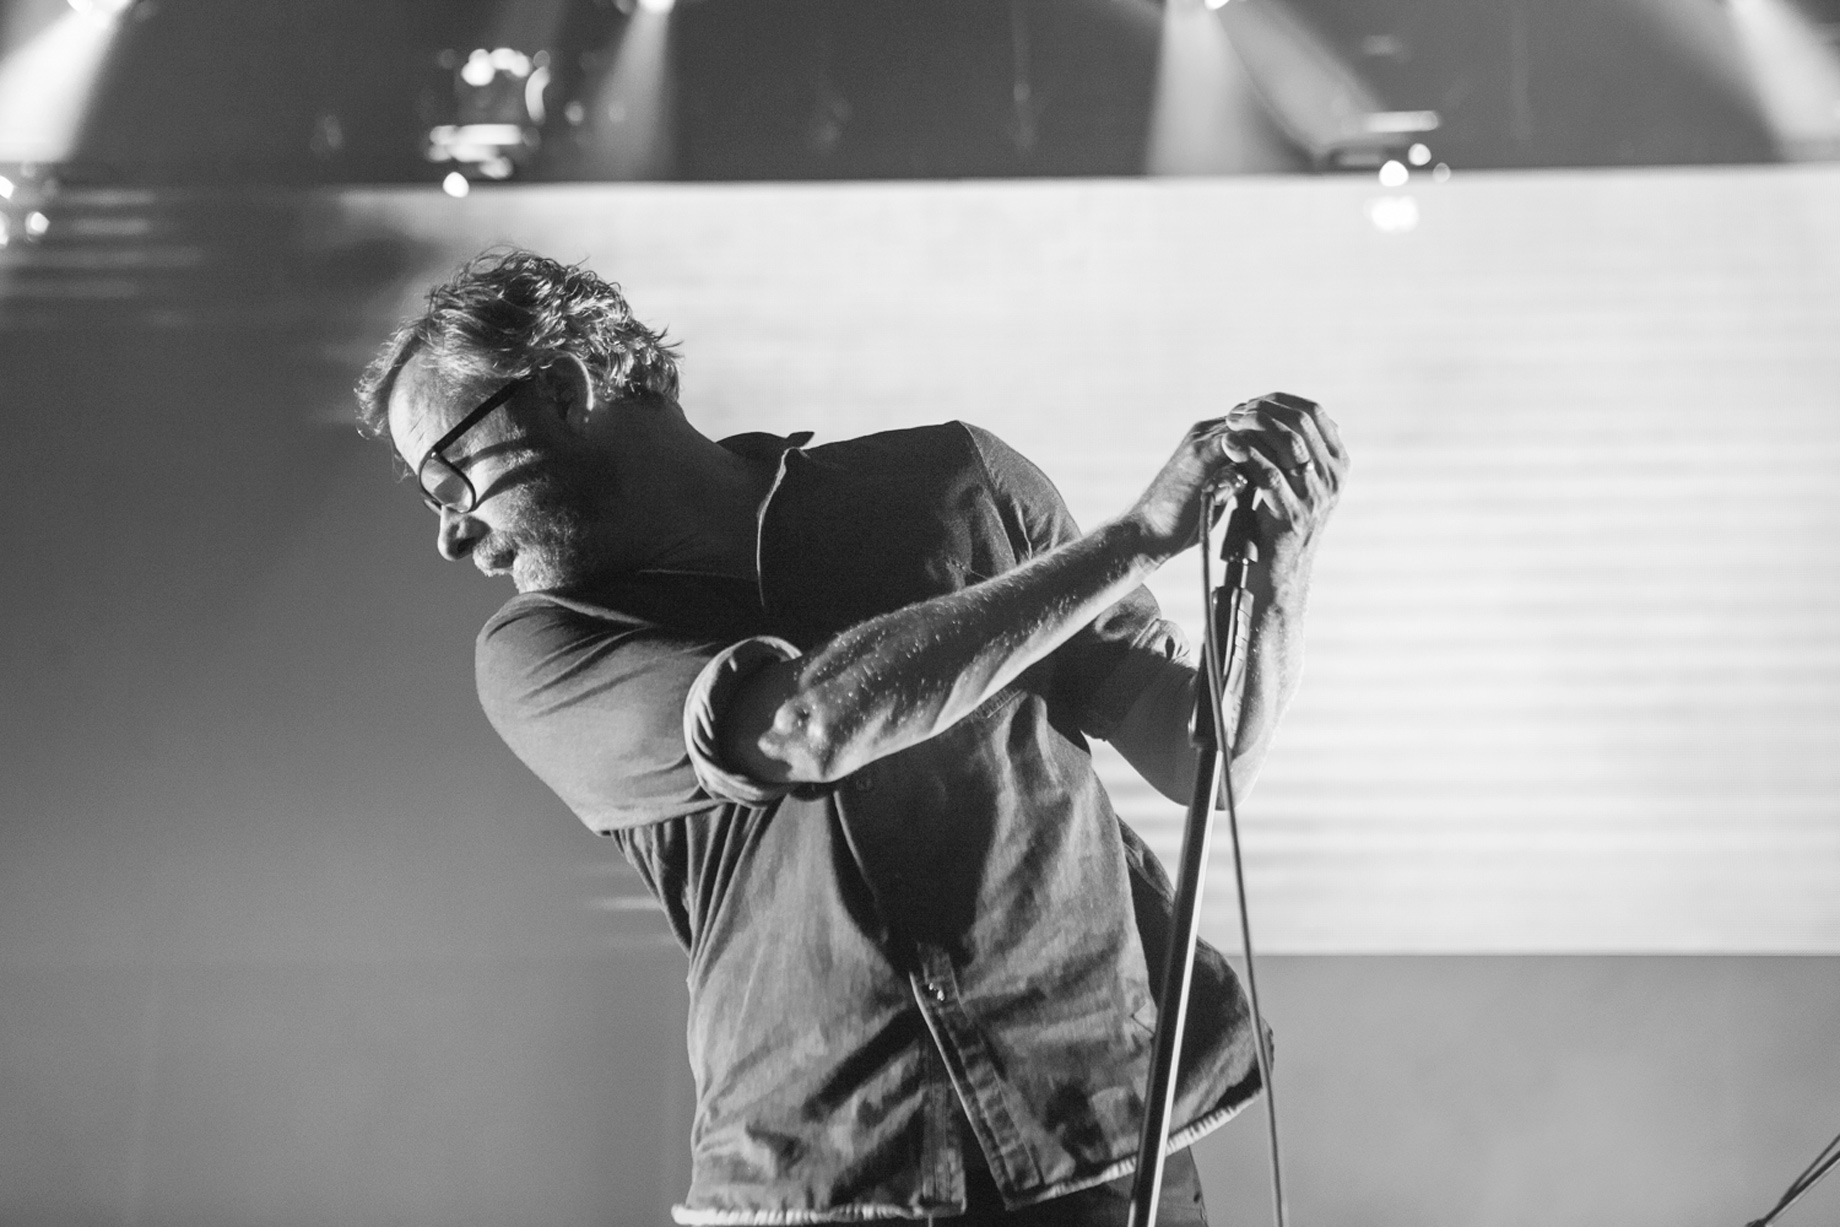 Matt Berninger, The National, Edinburgh, 2017